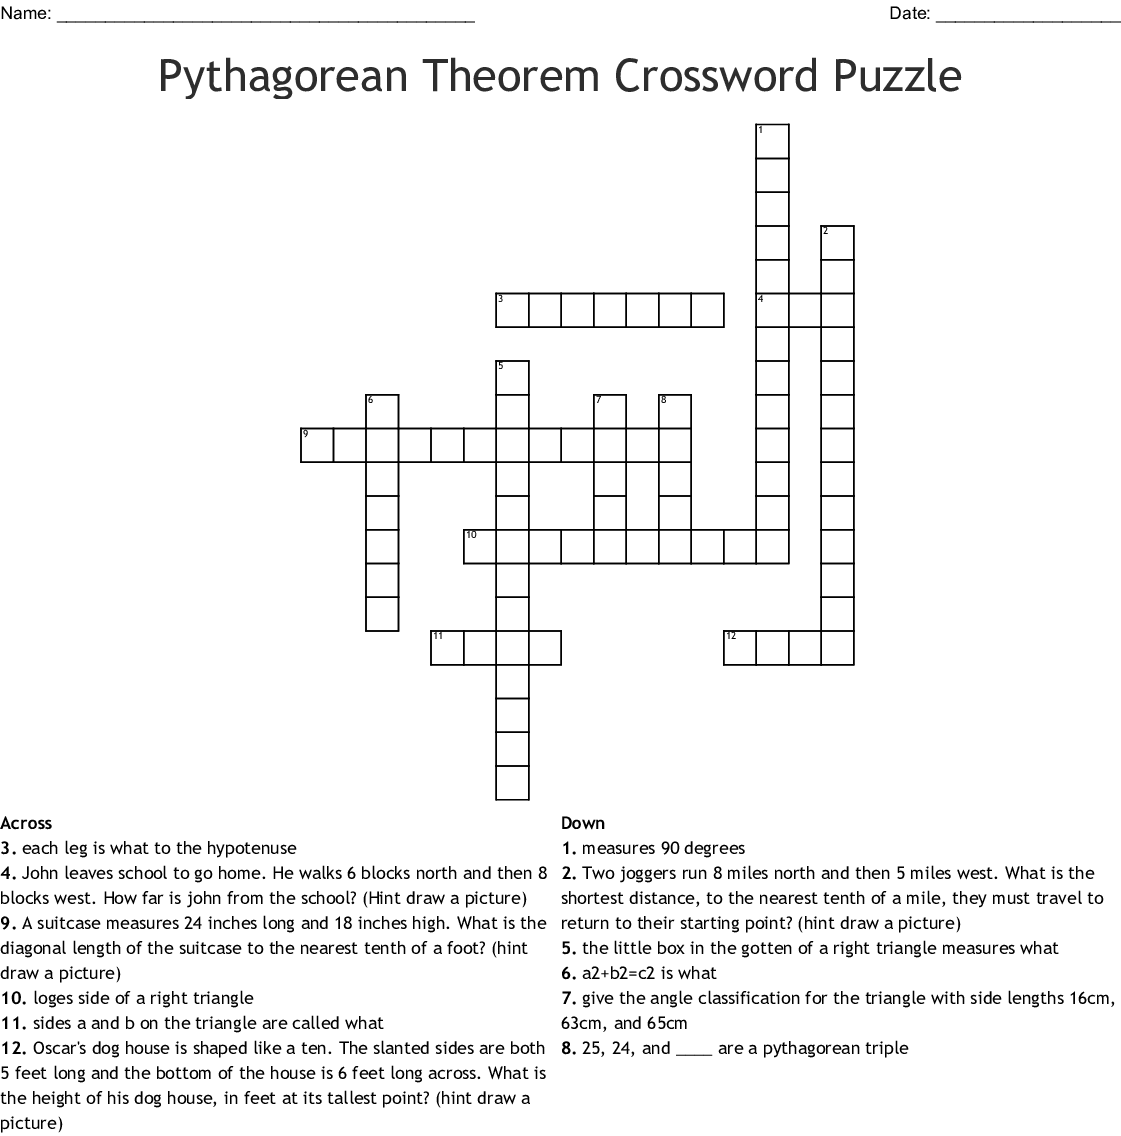 Pythagorean Theorem Crossword